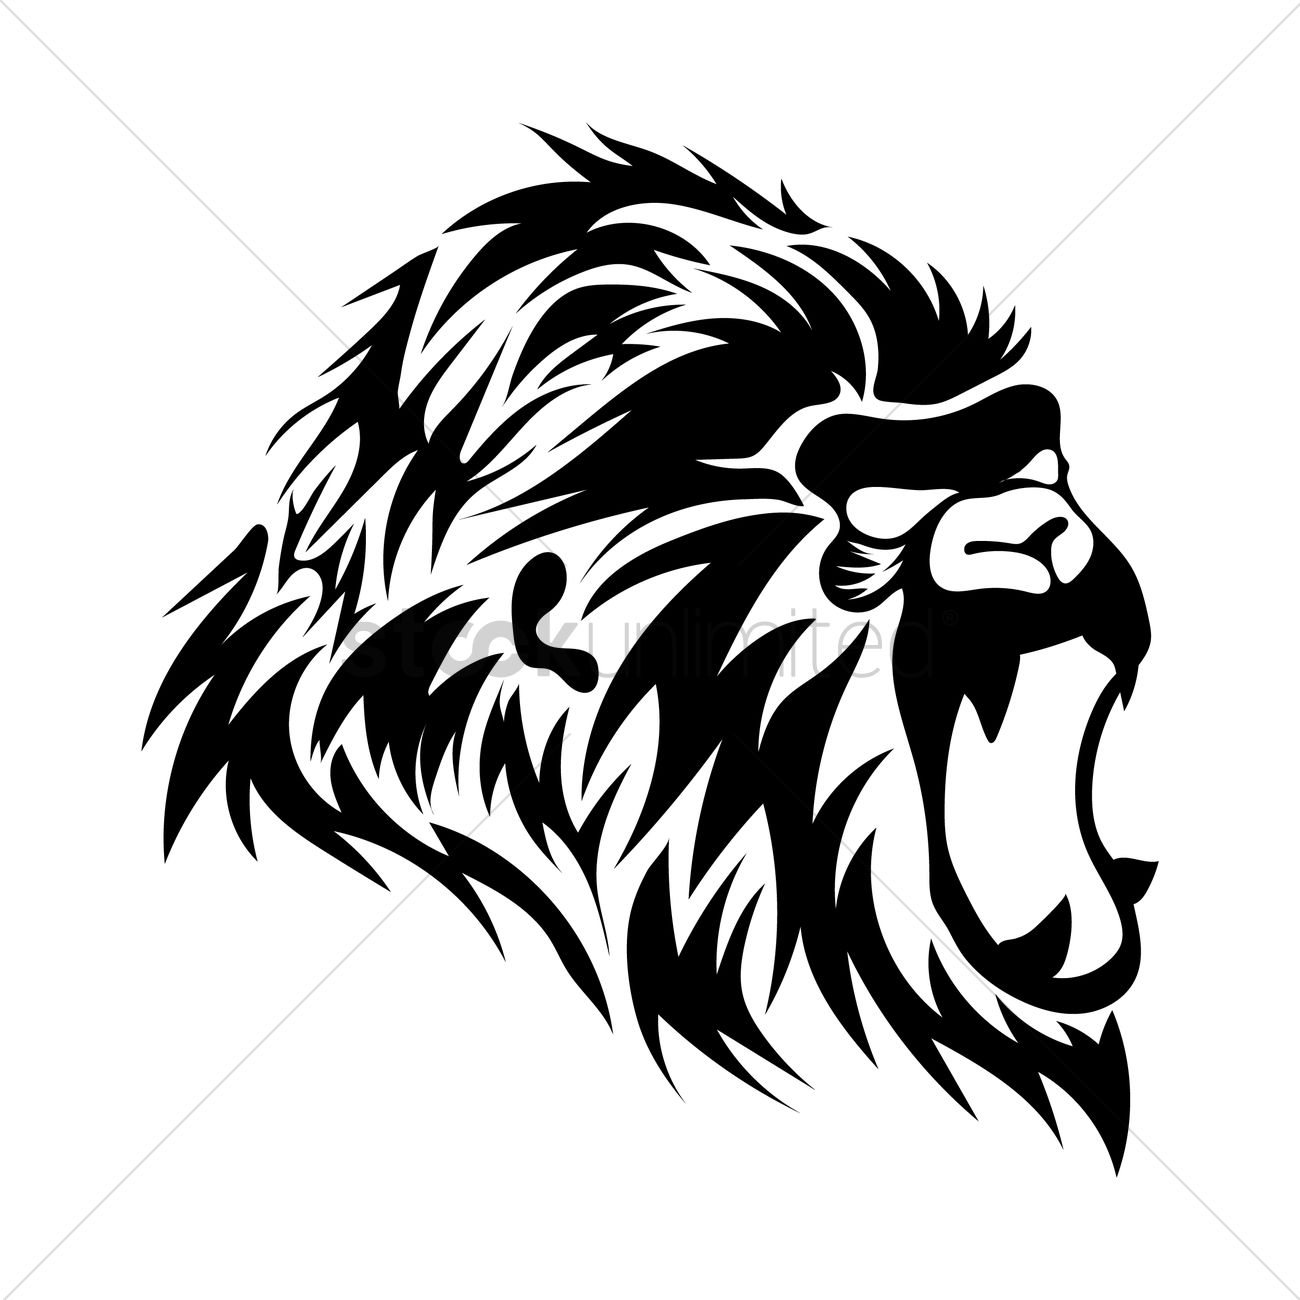 1300x1300 Gorilla Tattoo Design Vector Image